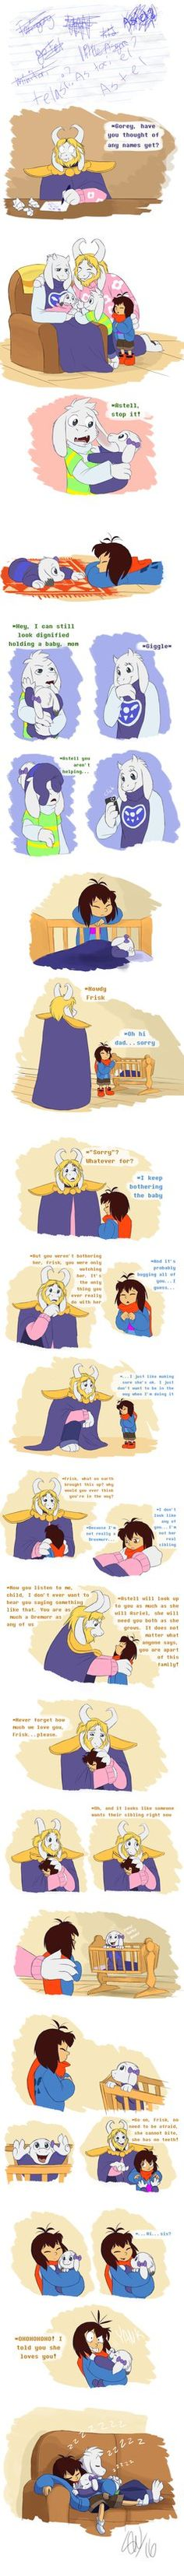 Undertale - Baby Makes 5 (What if) by TC-96.deviantart.com on @DeviantArt